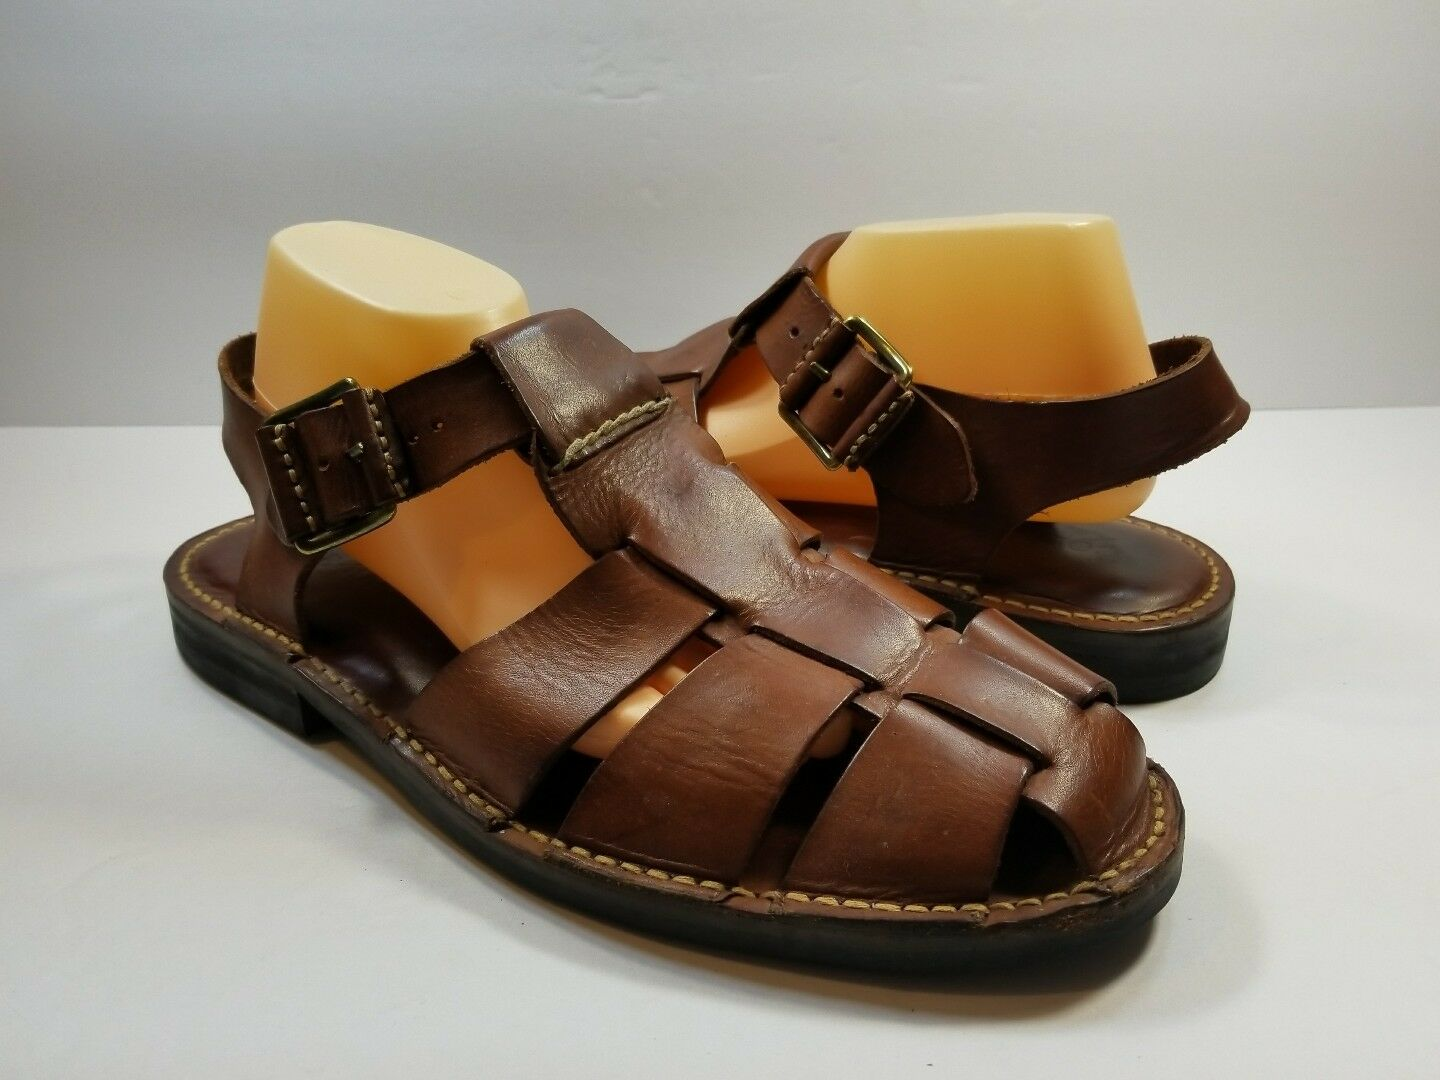 Cole Haan - Uomo Fisherman Sandals Brown Pelle - Haan - Size 12D a2496f